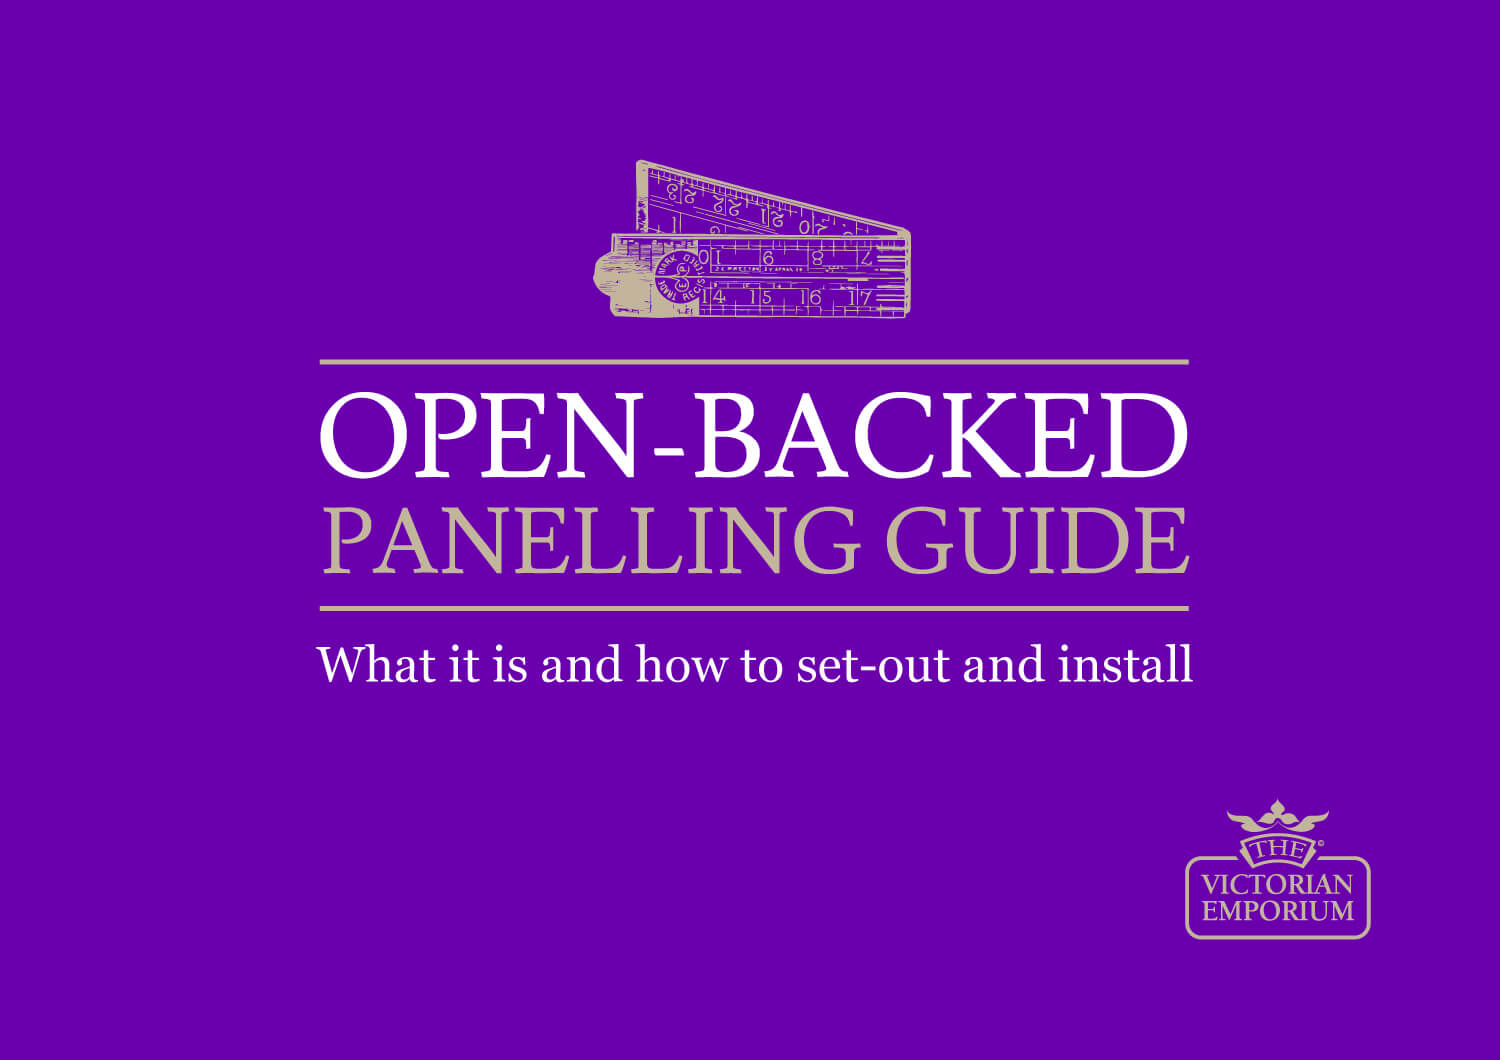 Panelling Guide